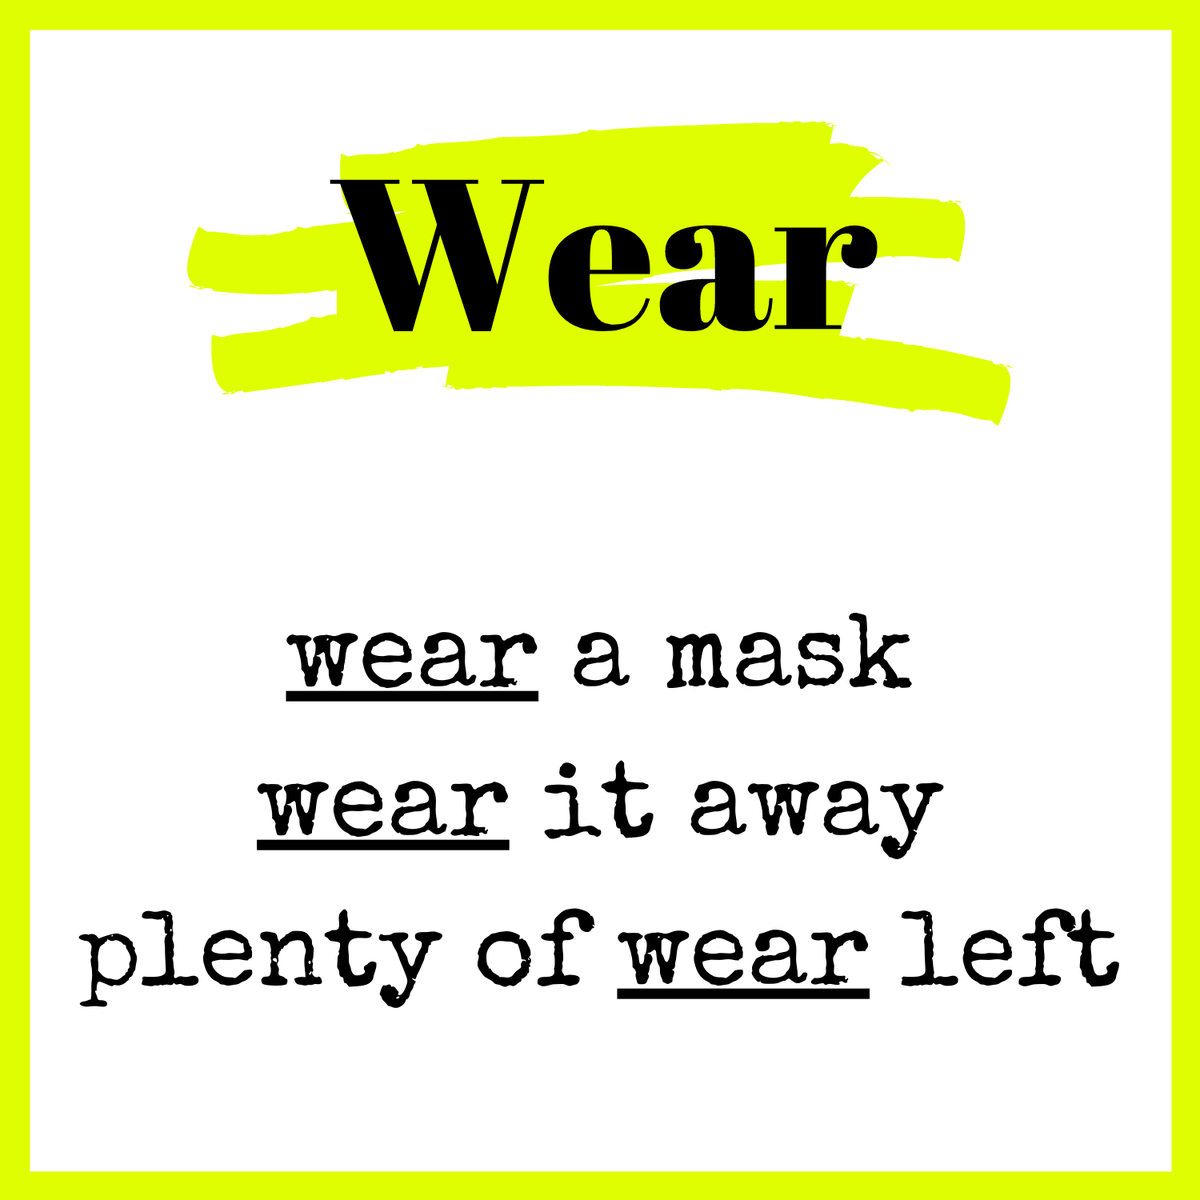 Confusing Words & how to use them Wear  #proofreading #proofreader #spelling #grammar #editorial #language #freelance #professionalproofreader #freelanceproofreader #WearADamnMask #WearAMask https://t.co/aGNp5rtnMT